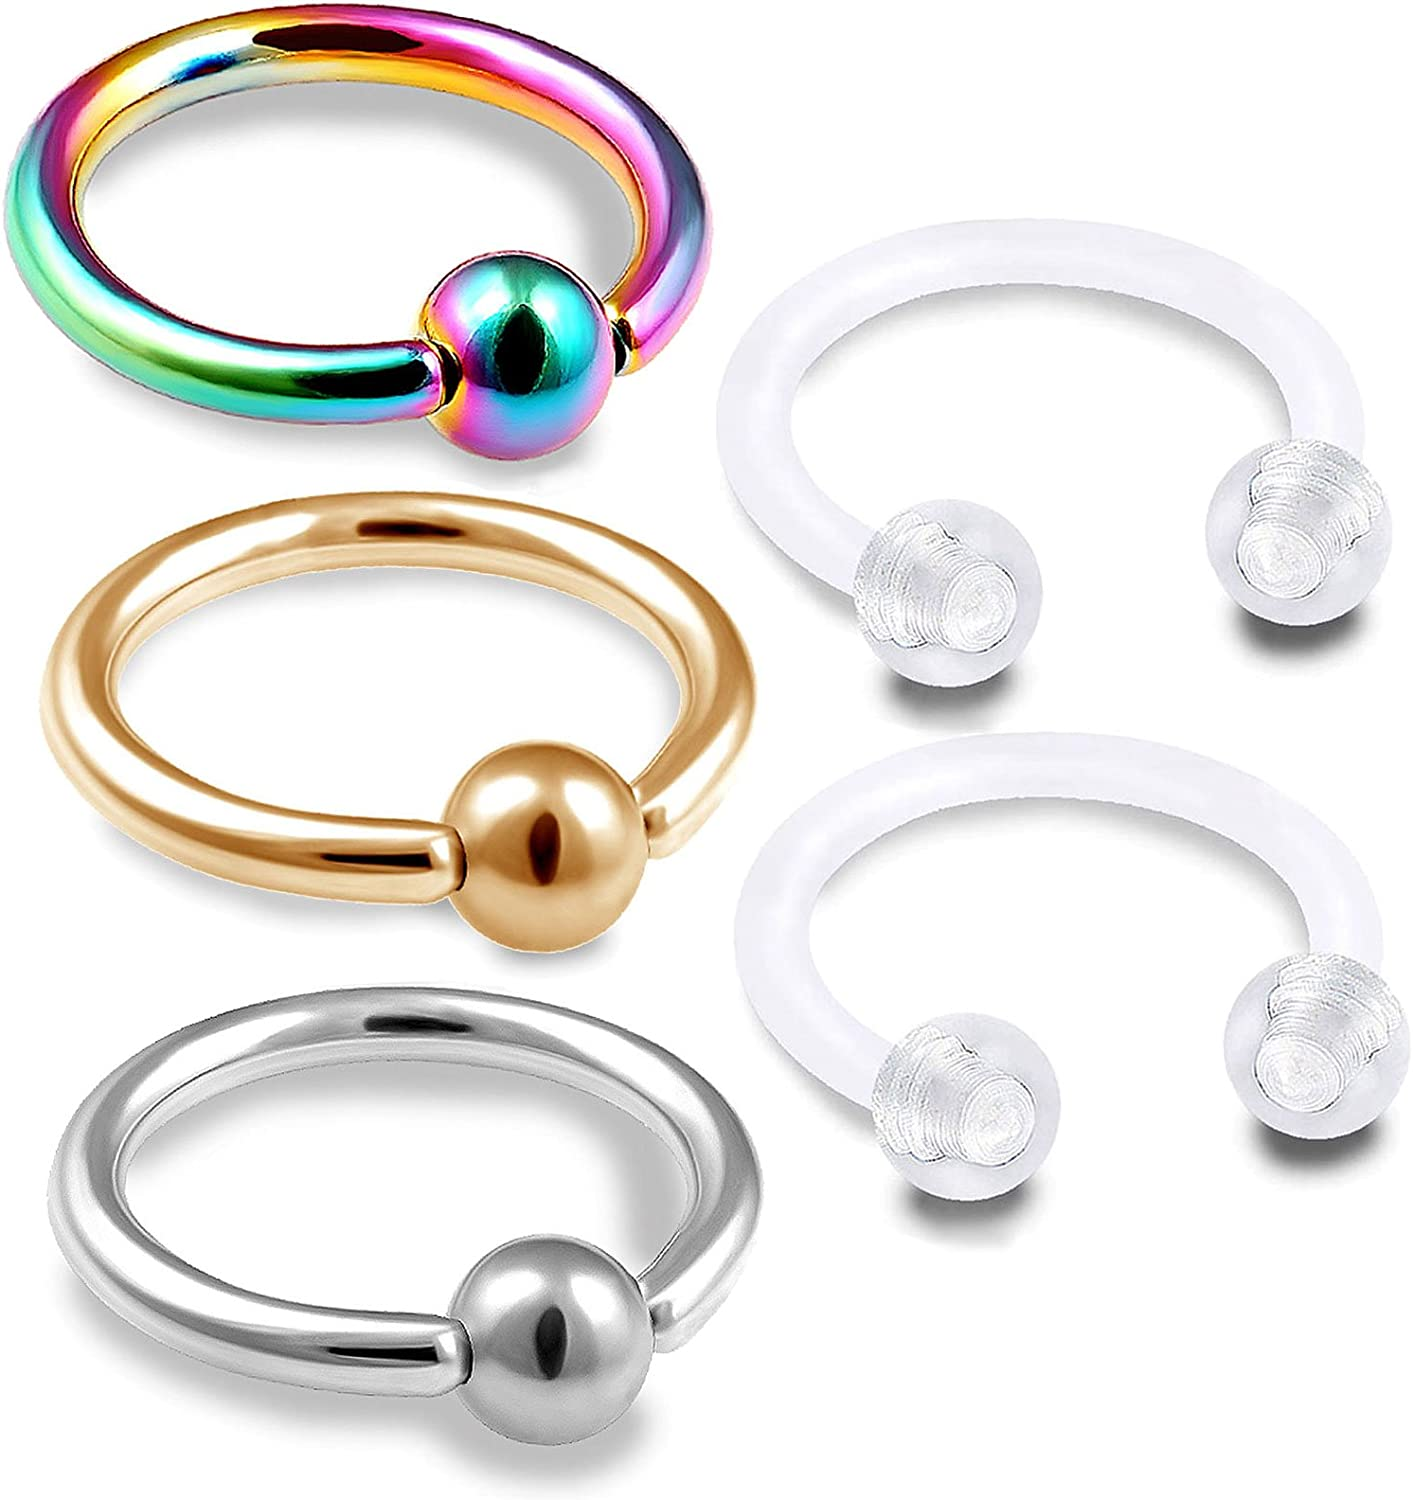 5pc Value Pack Pearlish Coated Acrylic Balls Eyebrow Rings 16g Body Jewelry